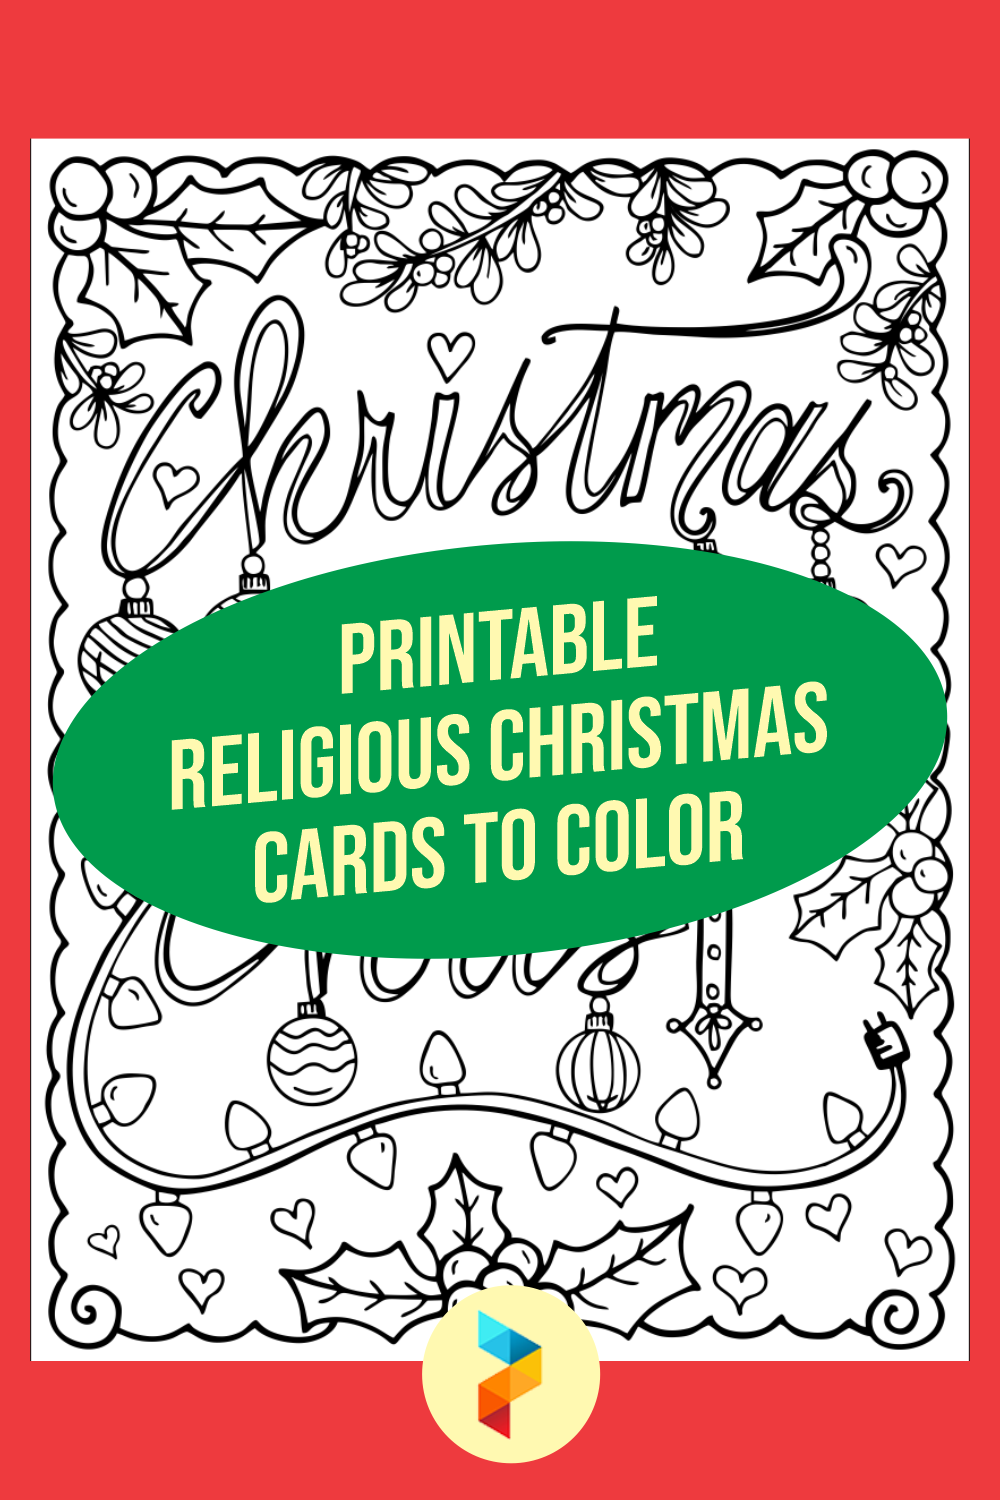 Printable Religious Christmas Cards To Color